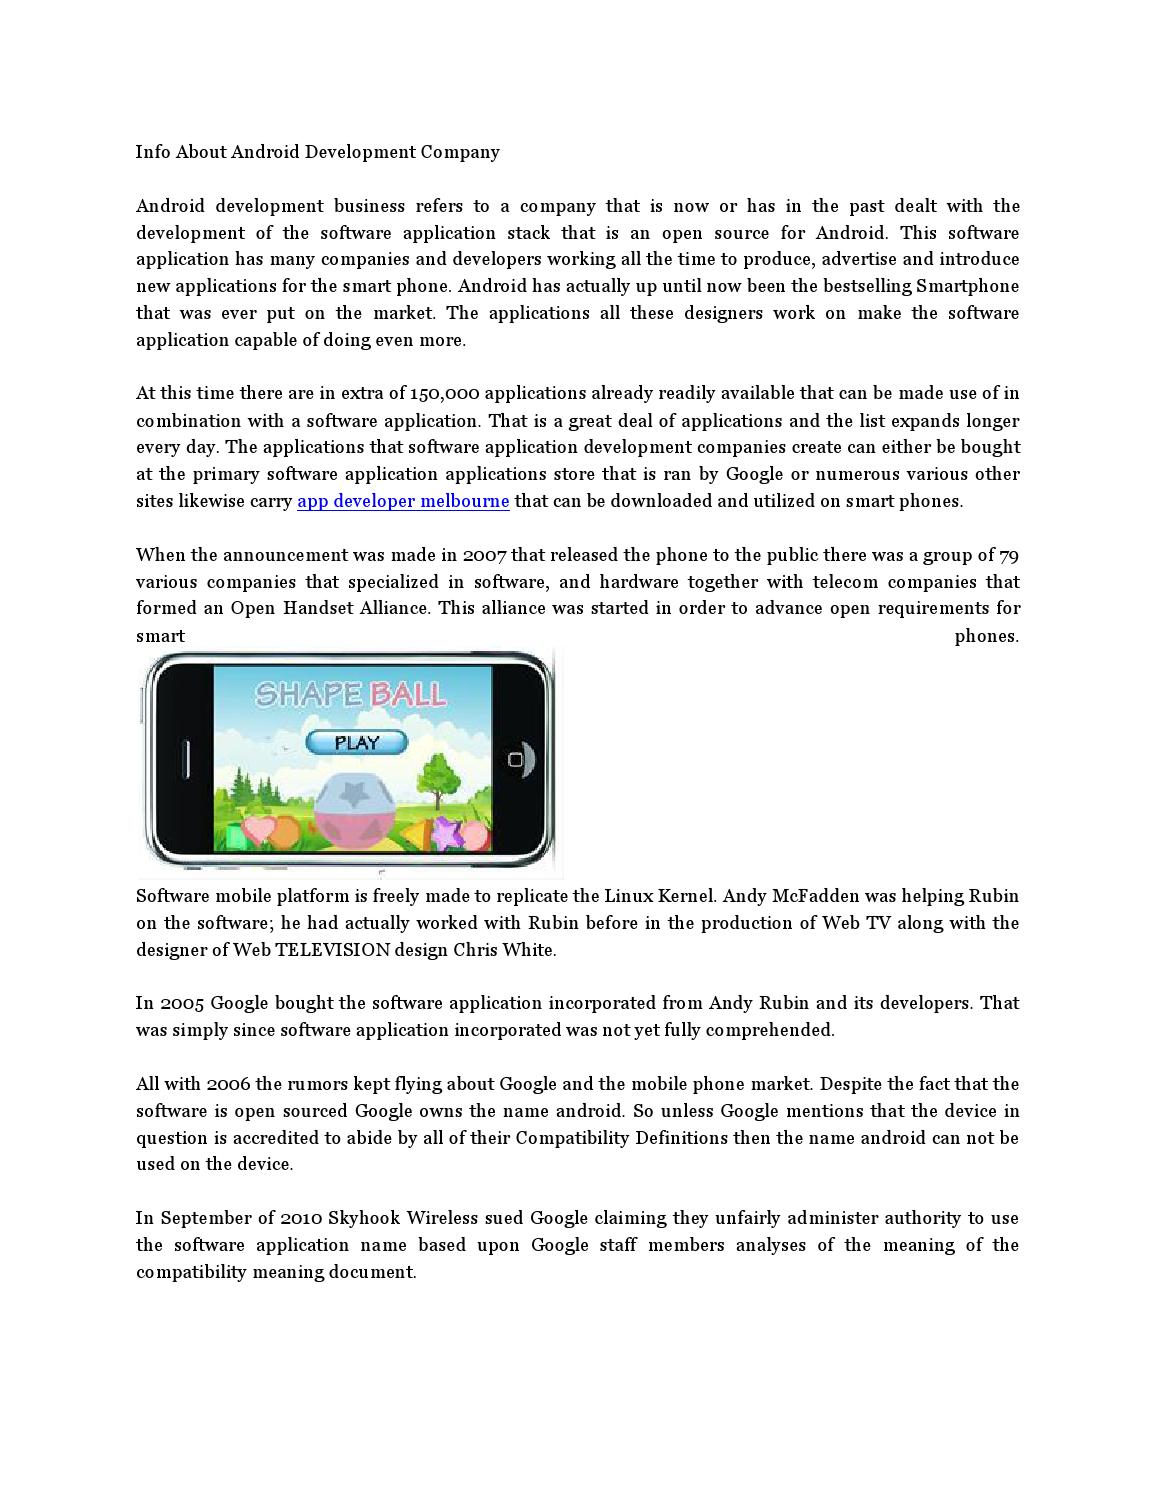 Info about android development compan6 by mactin62 - issuu